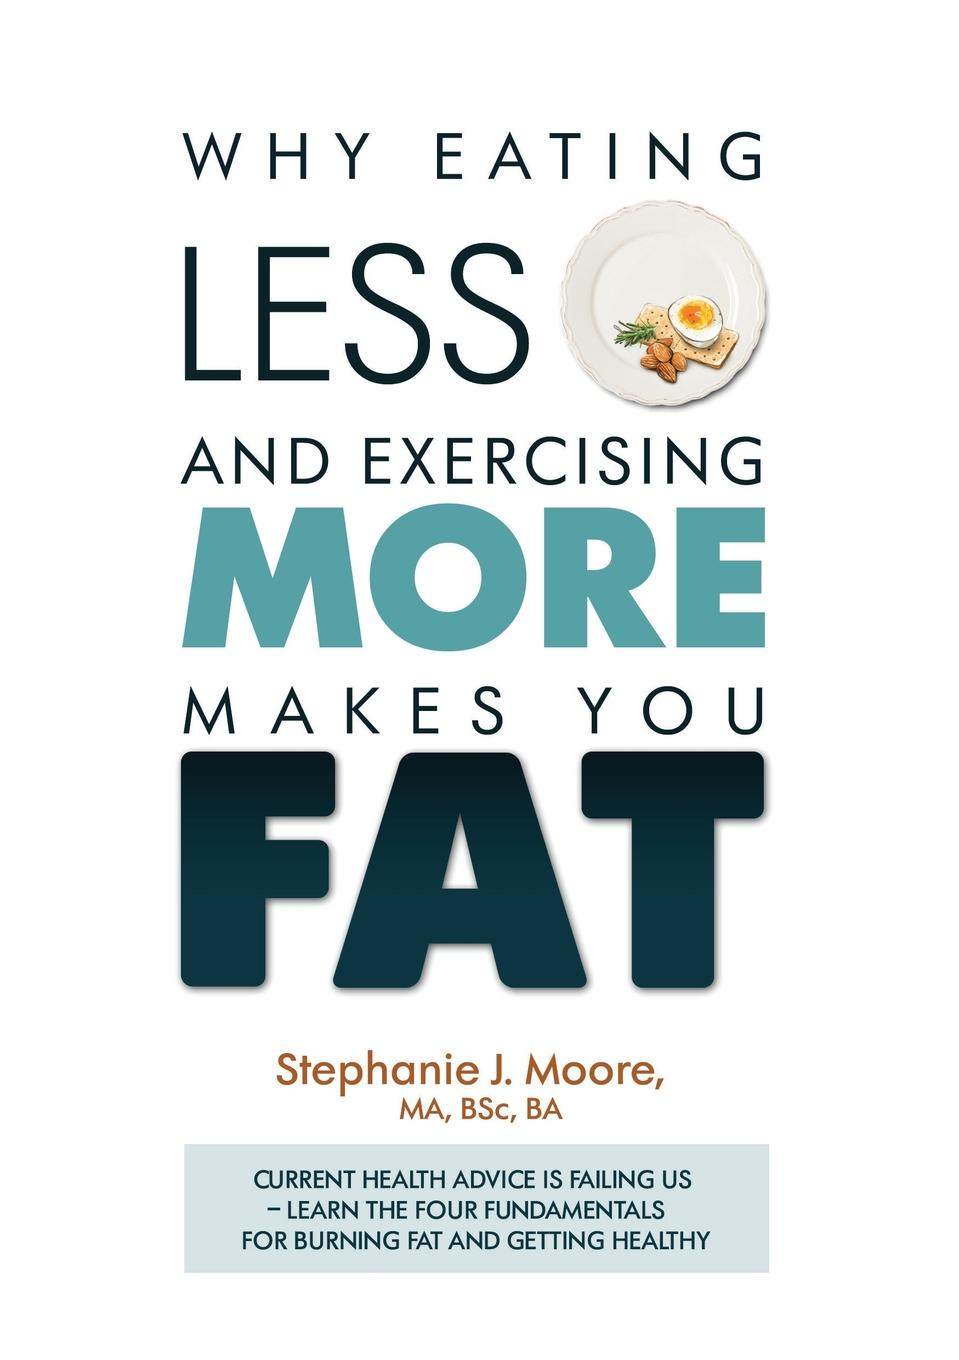 Stephanie J Moore Why Eating Less and Exercising More Makes You Fat. Current Health Advice is Failing Us - Learn the Four Fundamentals For Burning Fat and Getting Healthy body massager weight loss fat burning with 5 headers relax spin tone slimming lose weight burn fat full body massage device